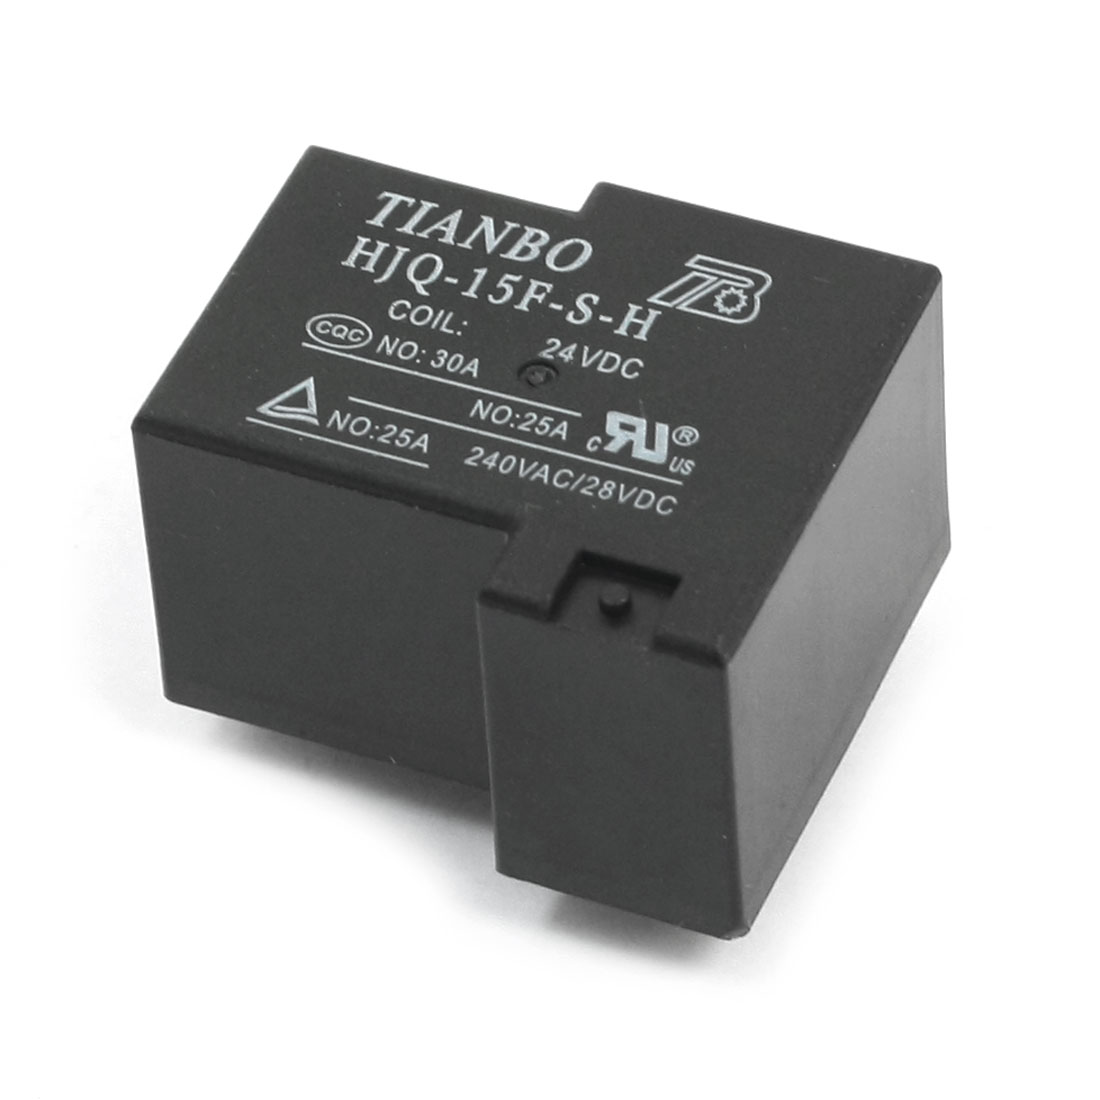 HJQ-15F-S-H-24VDC DC 24V 5-Pin SPDT 1NO 1NC Plug in Type PCB Surface Mounting General Purpose Coil Power Relay